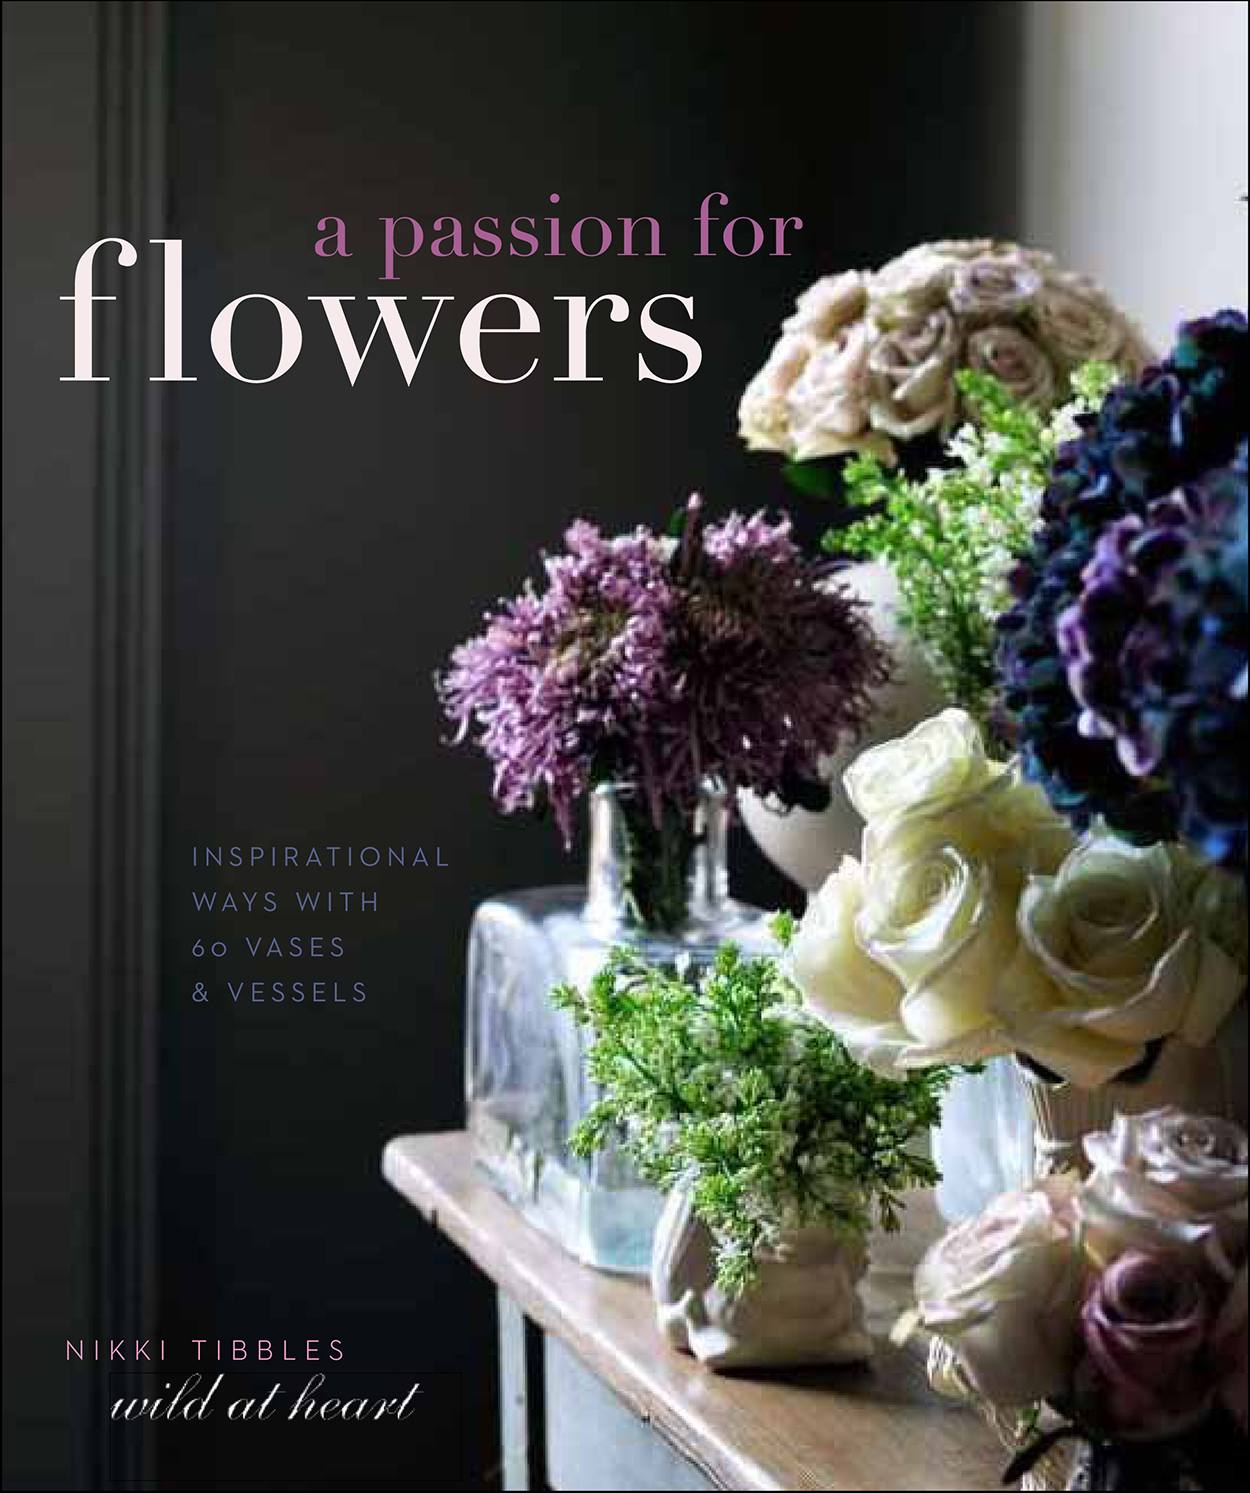 A Passion for Flowers.  Commissioned by Ivy Press